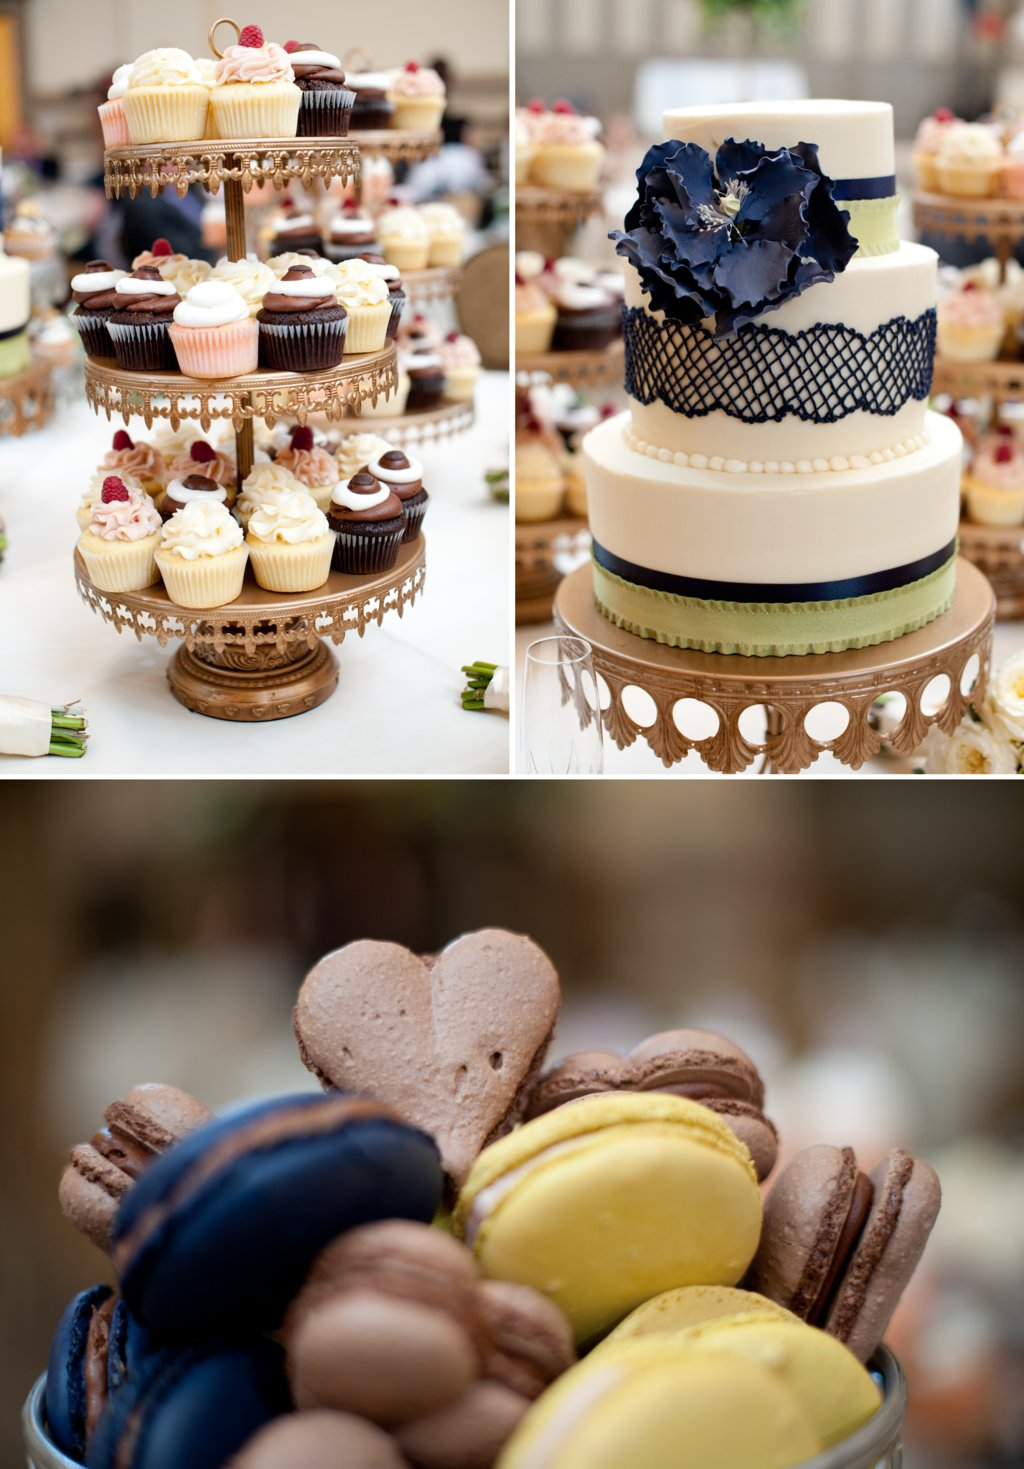 Scrabble-themed-wedding-virginia-wedding-venue-cake-cupcakes-macarons.full